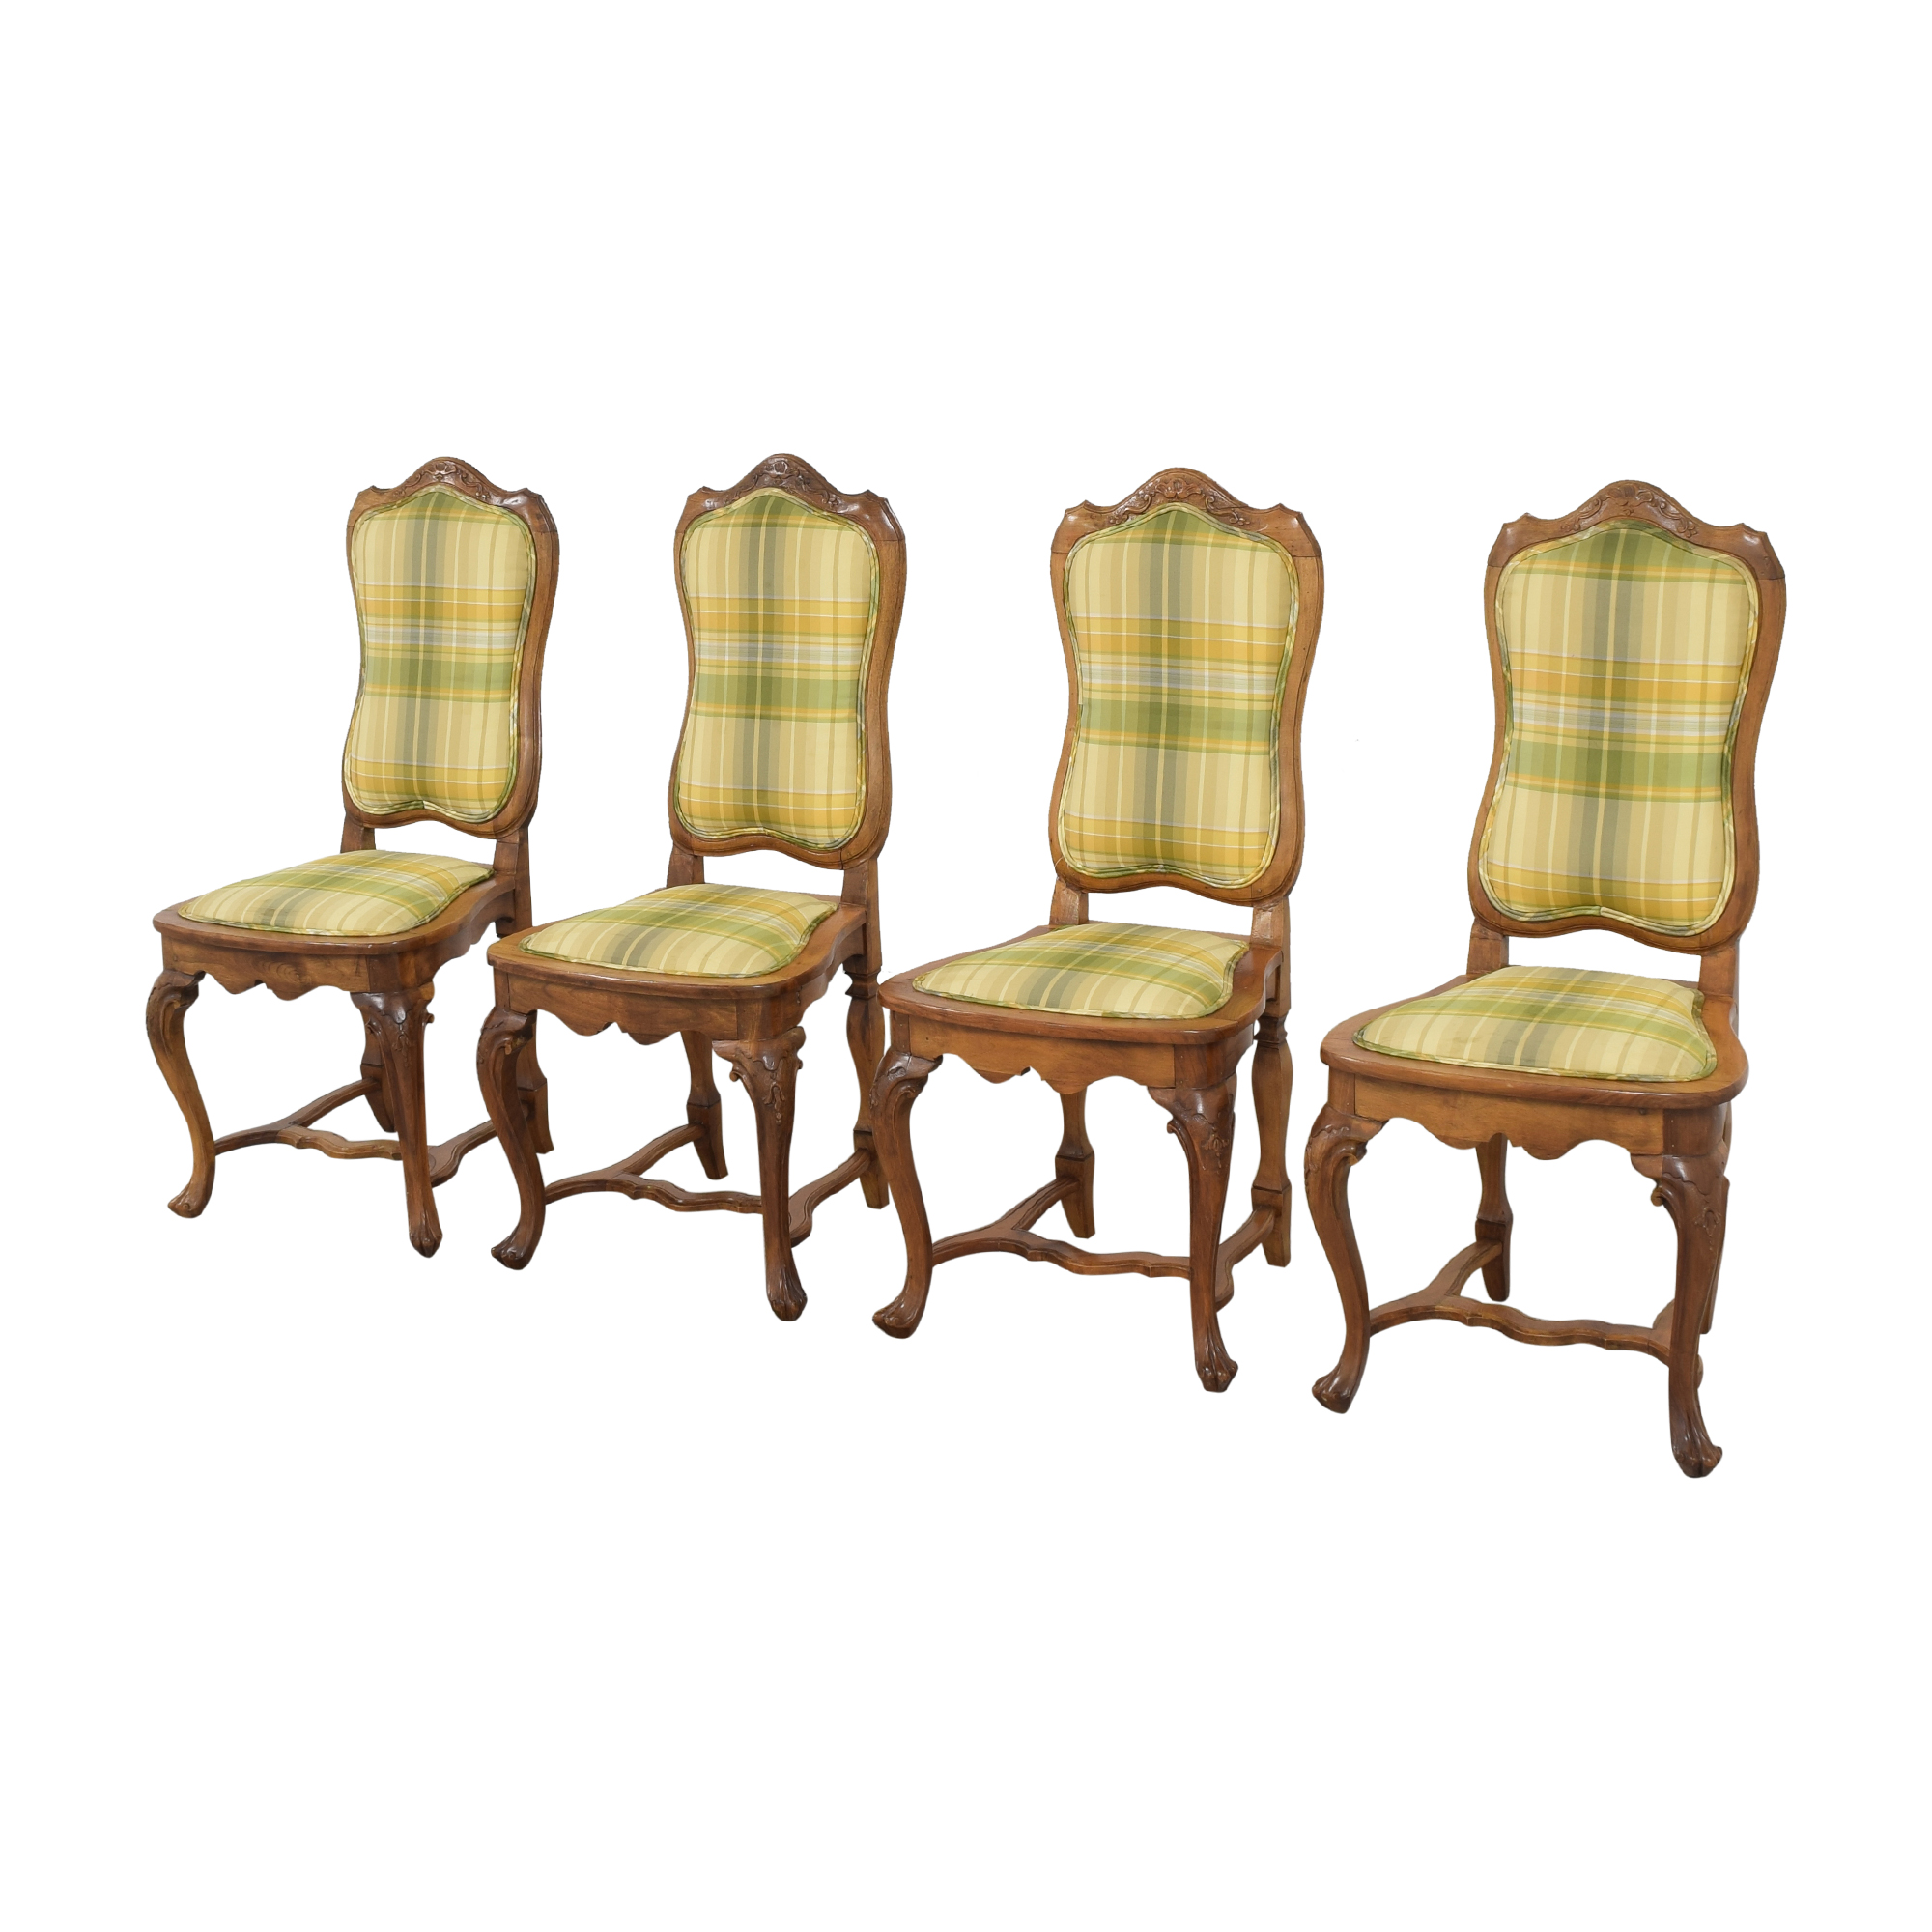 Italian Upholstered Dining Chairs multi